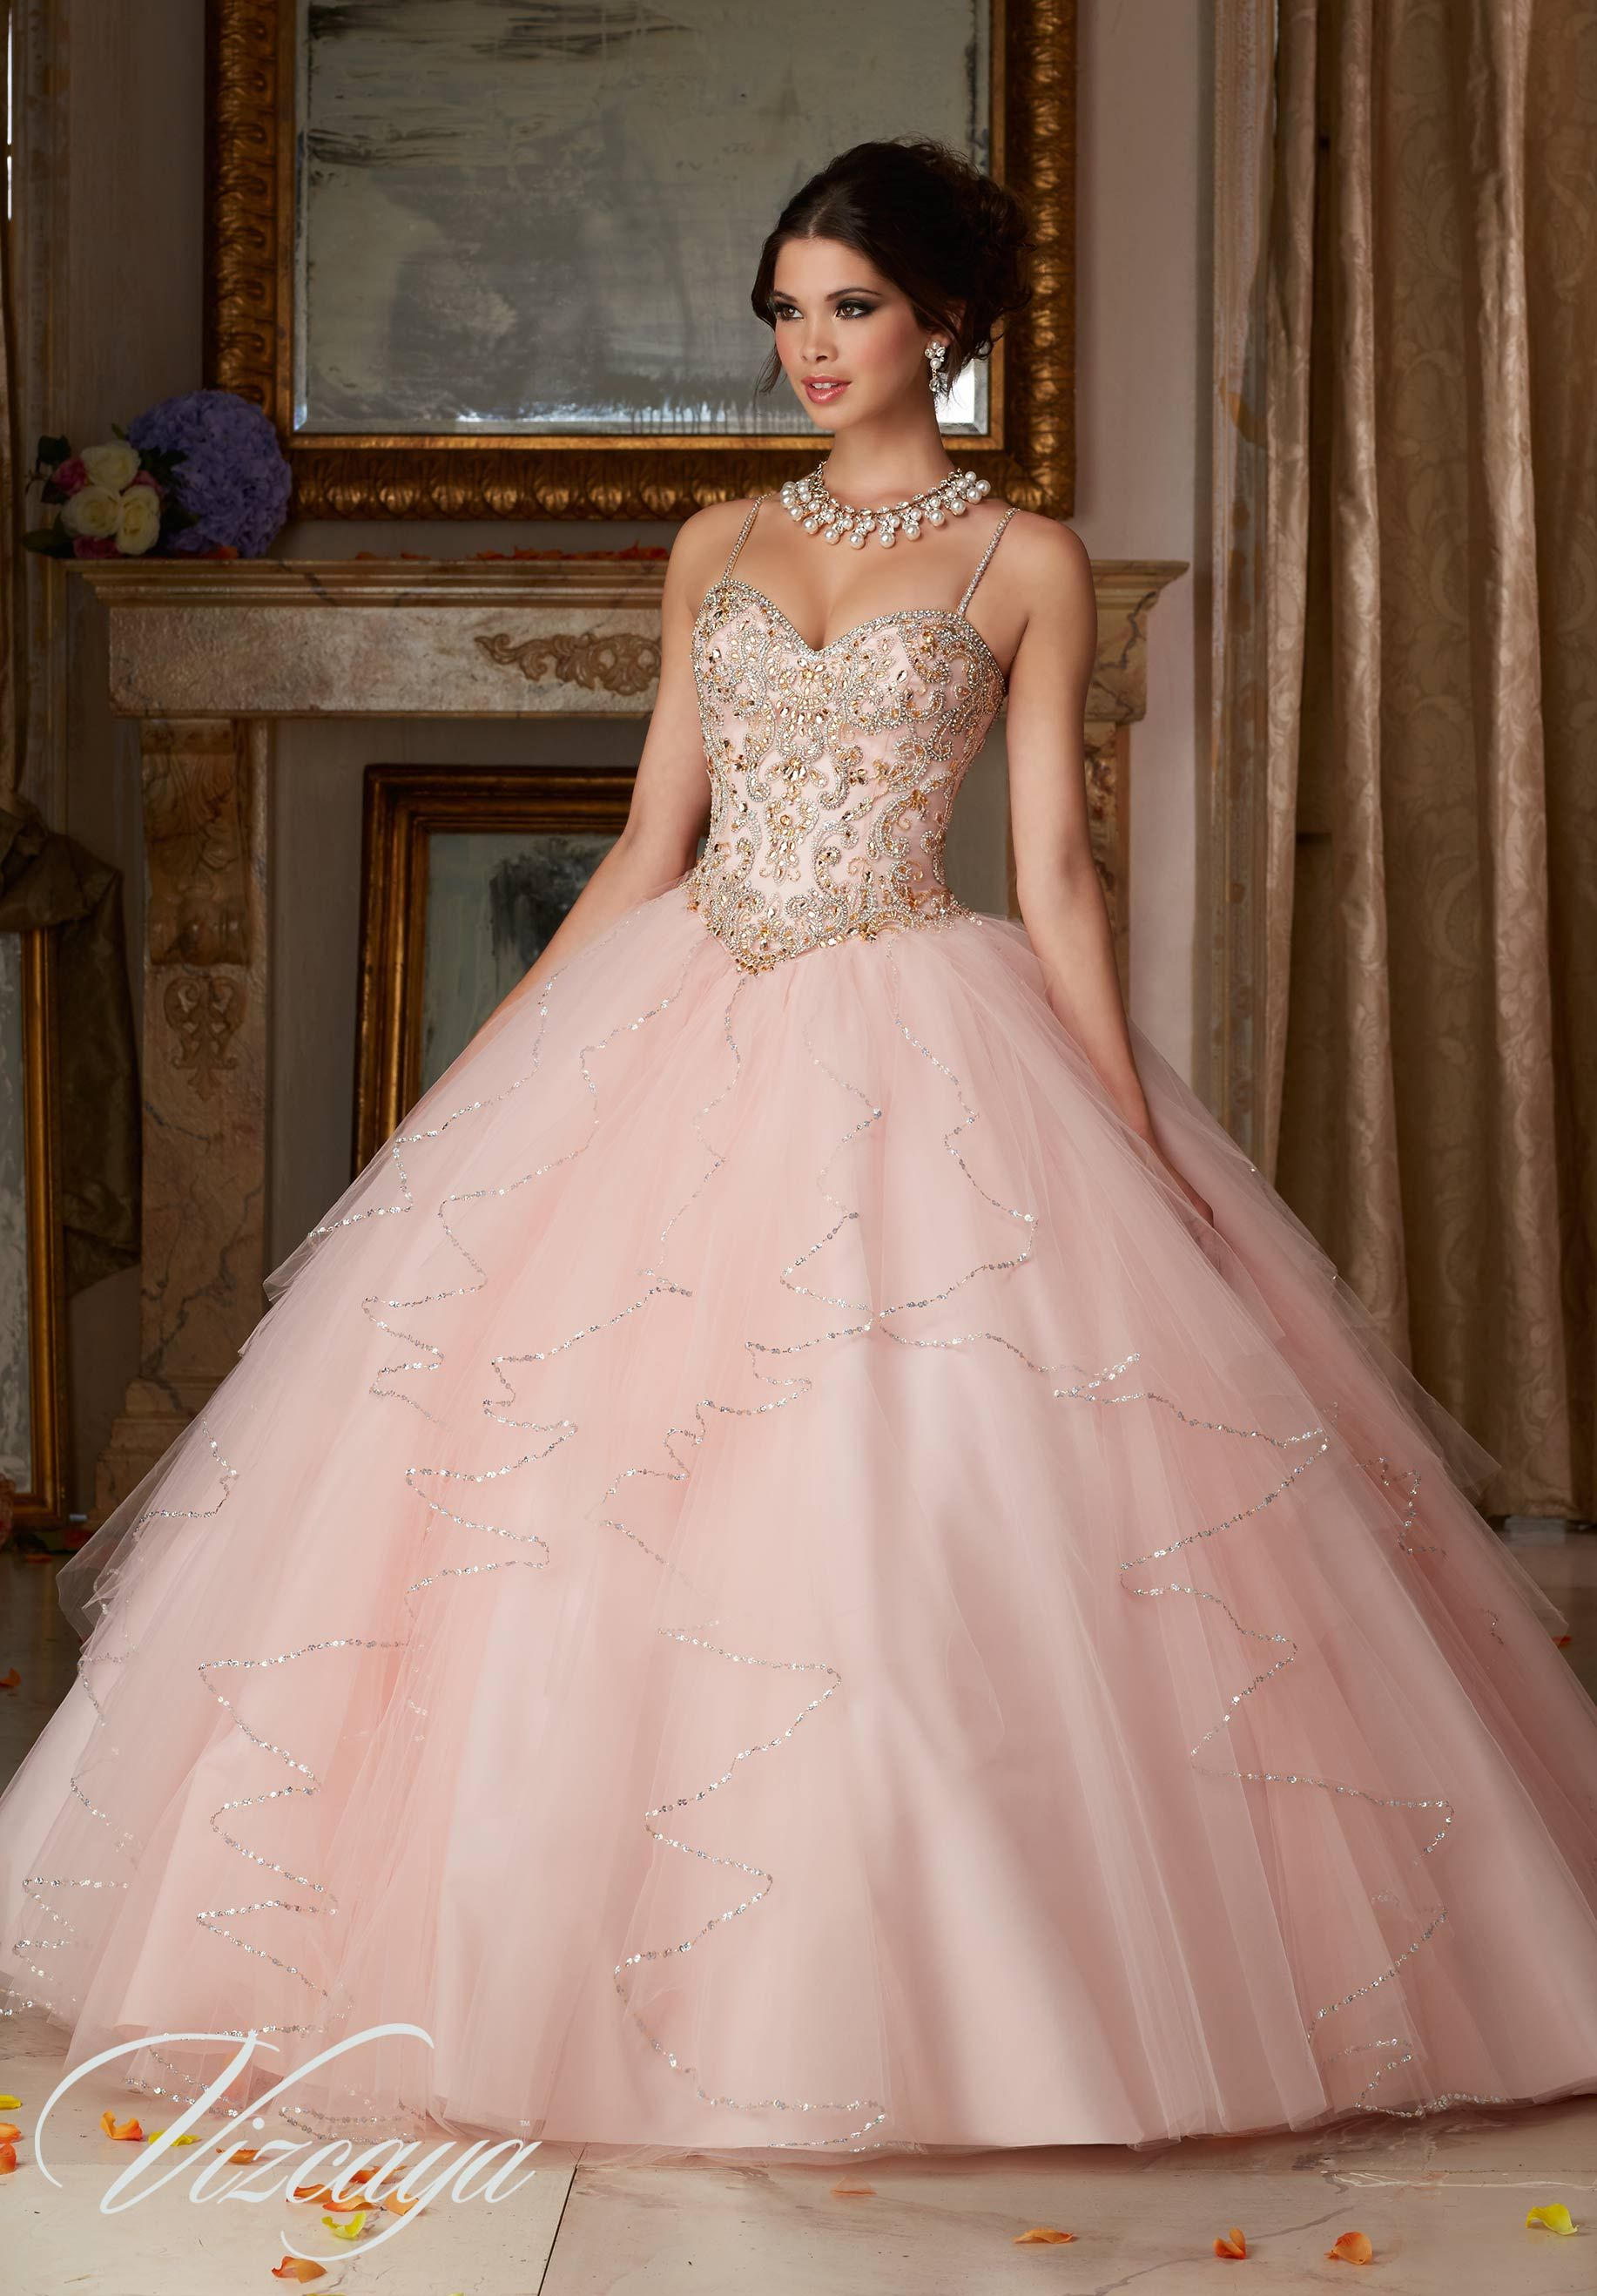 Quinceanera dresses by Vizcaya Jeweled Beading on a Flounced Tulle ...